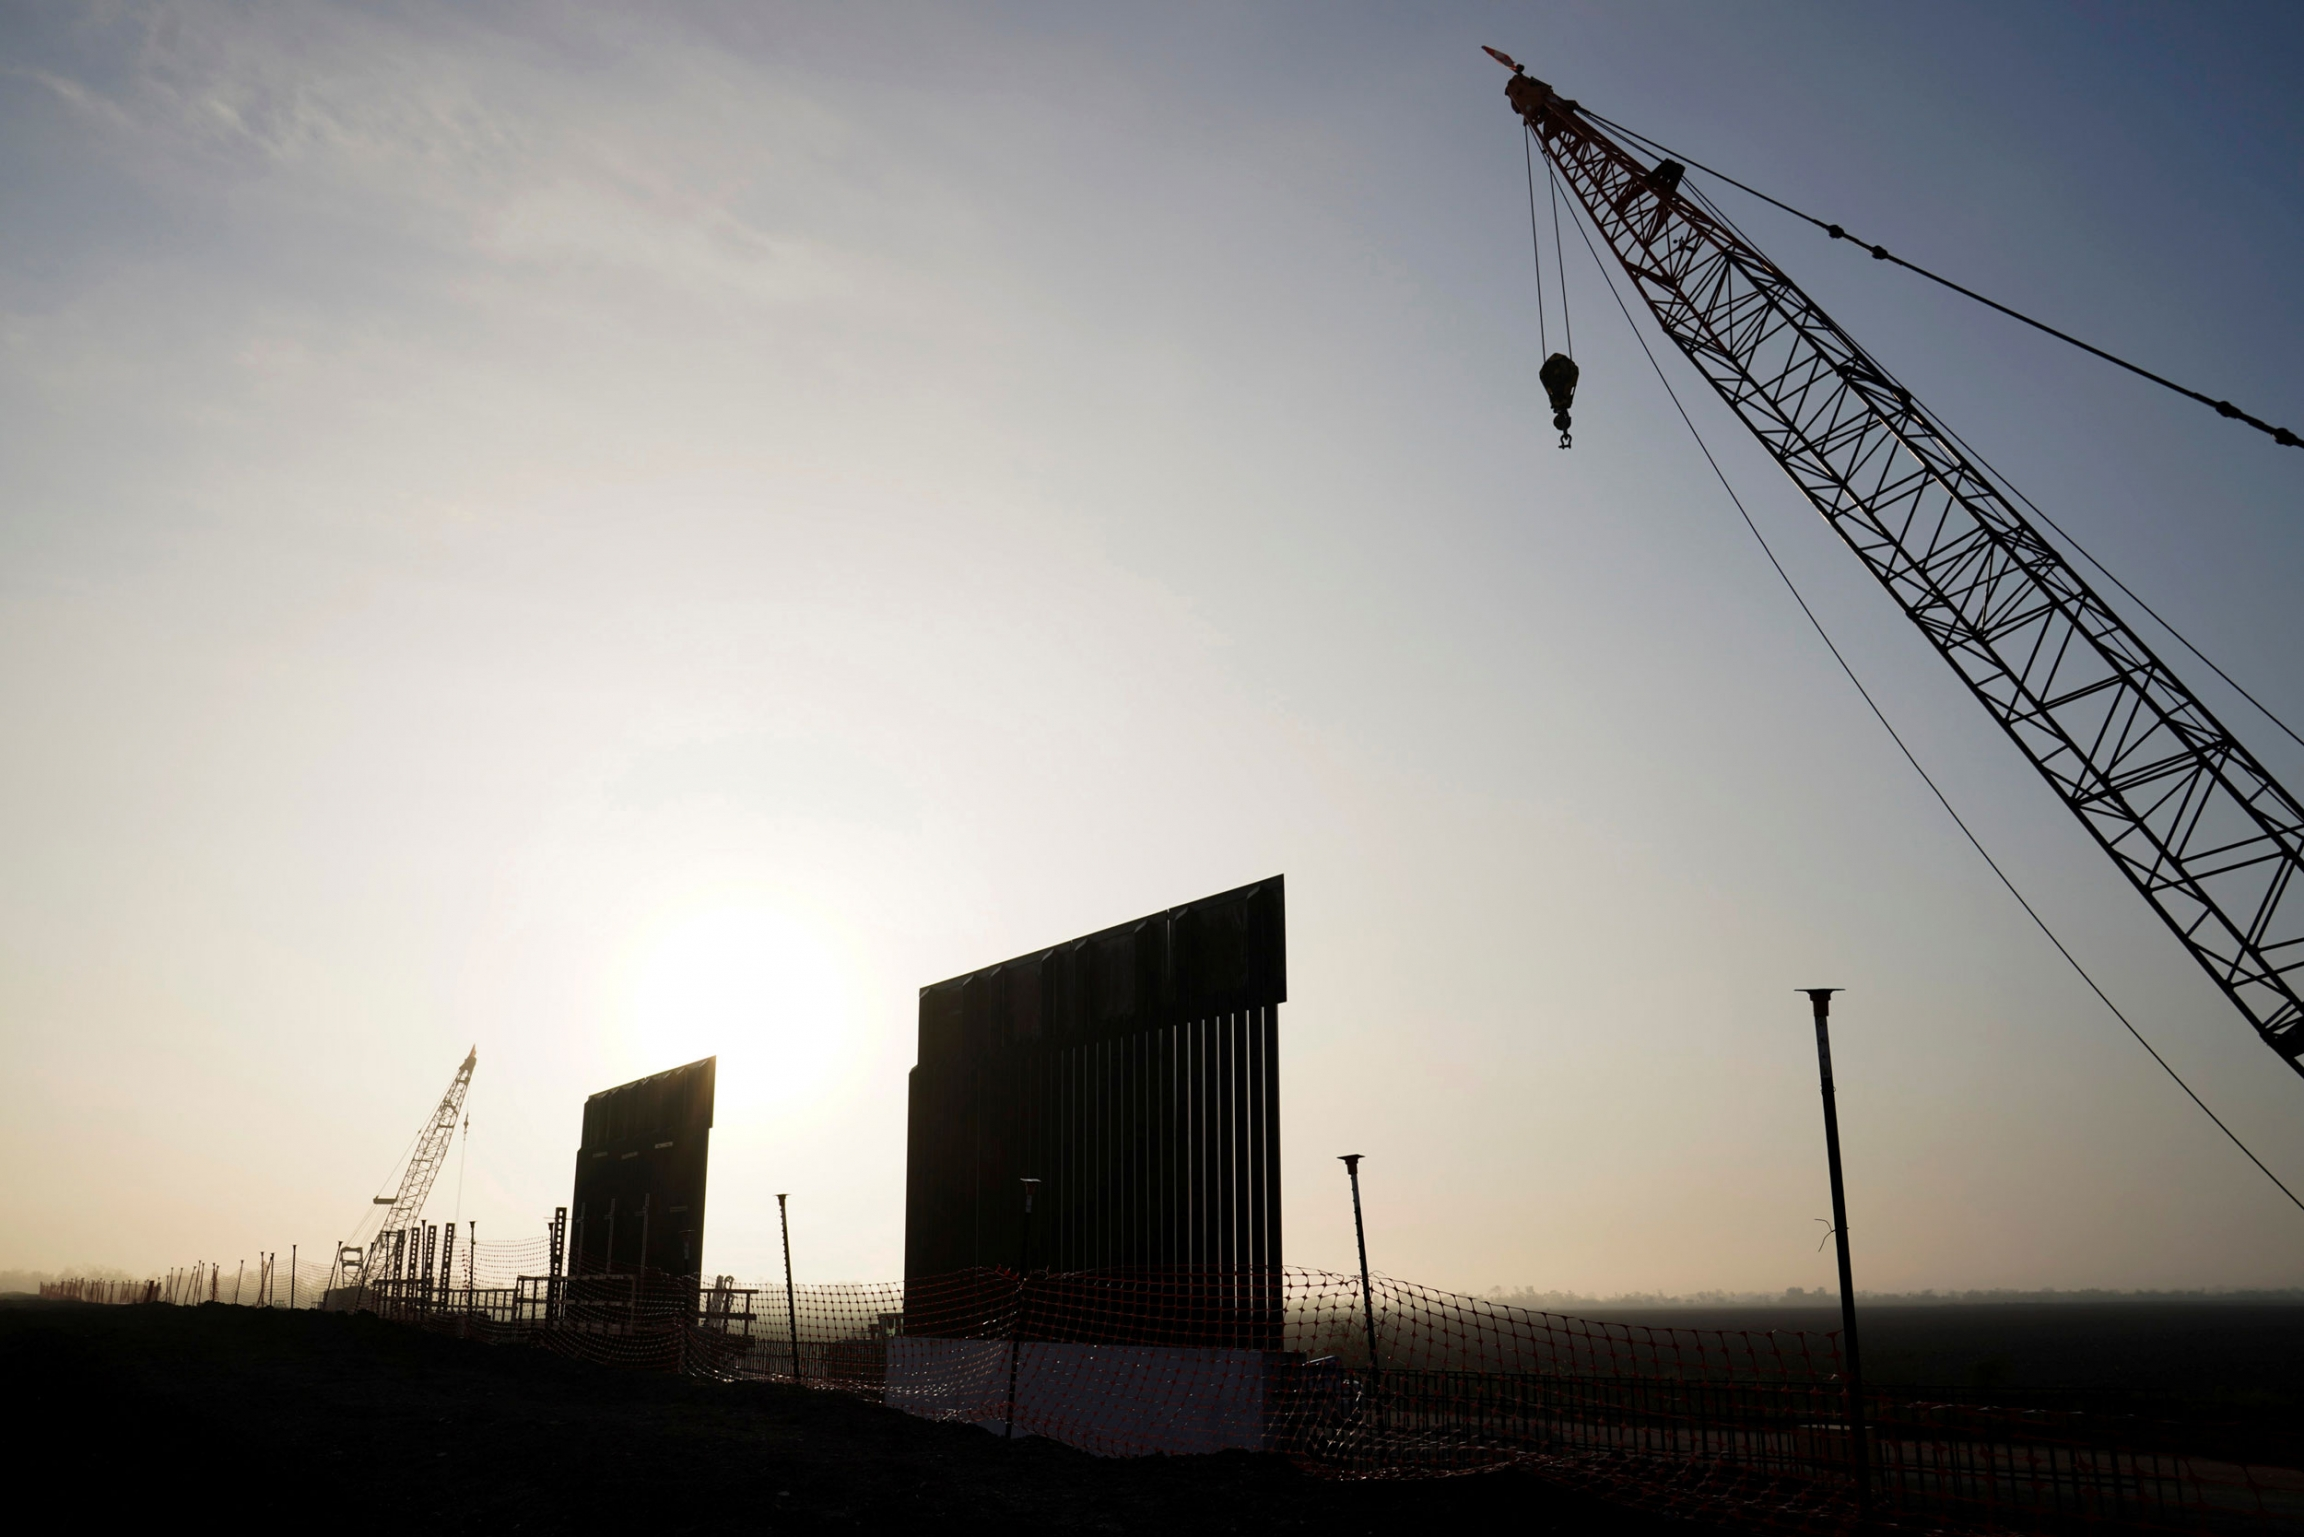 Two segments of the border wall are shown standing against a setting sun with a adjacent crane.